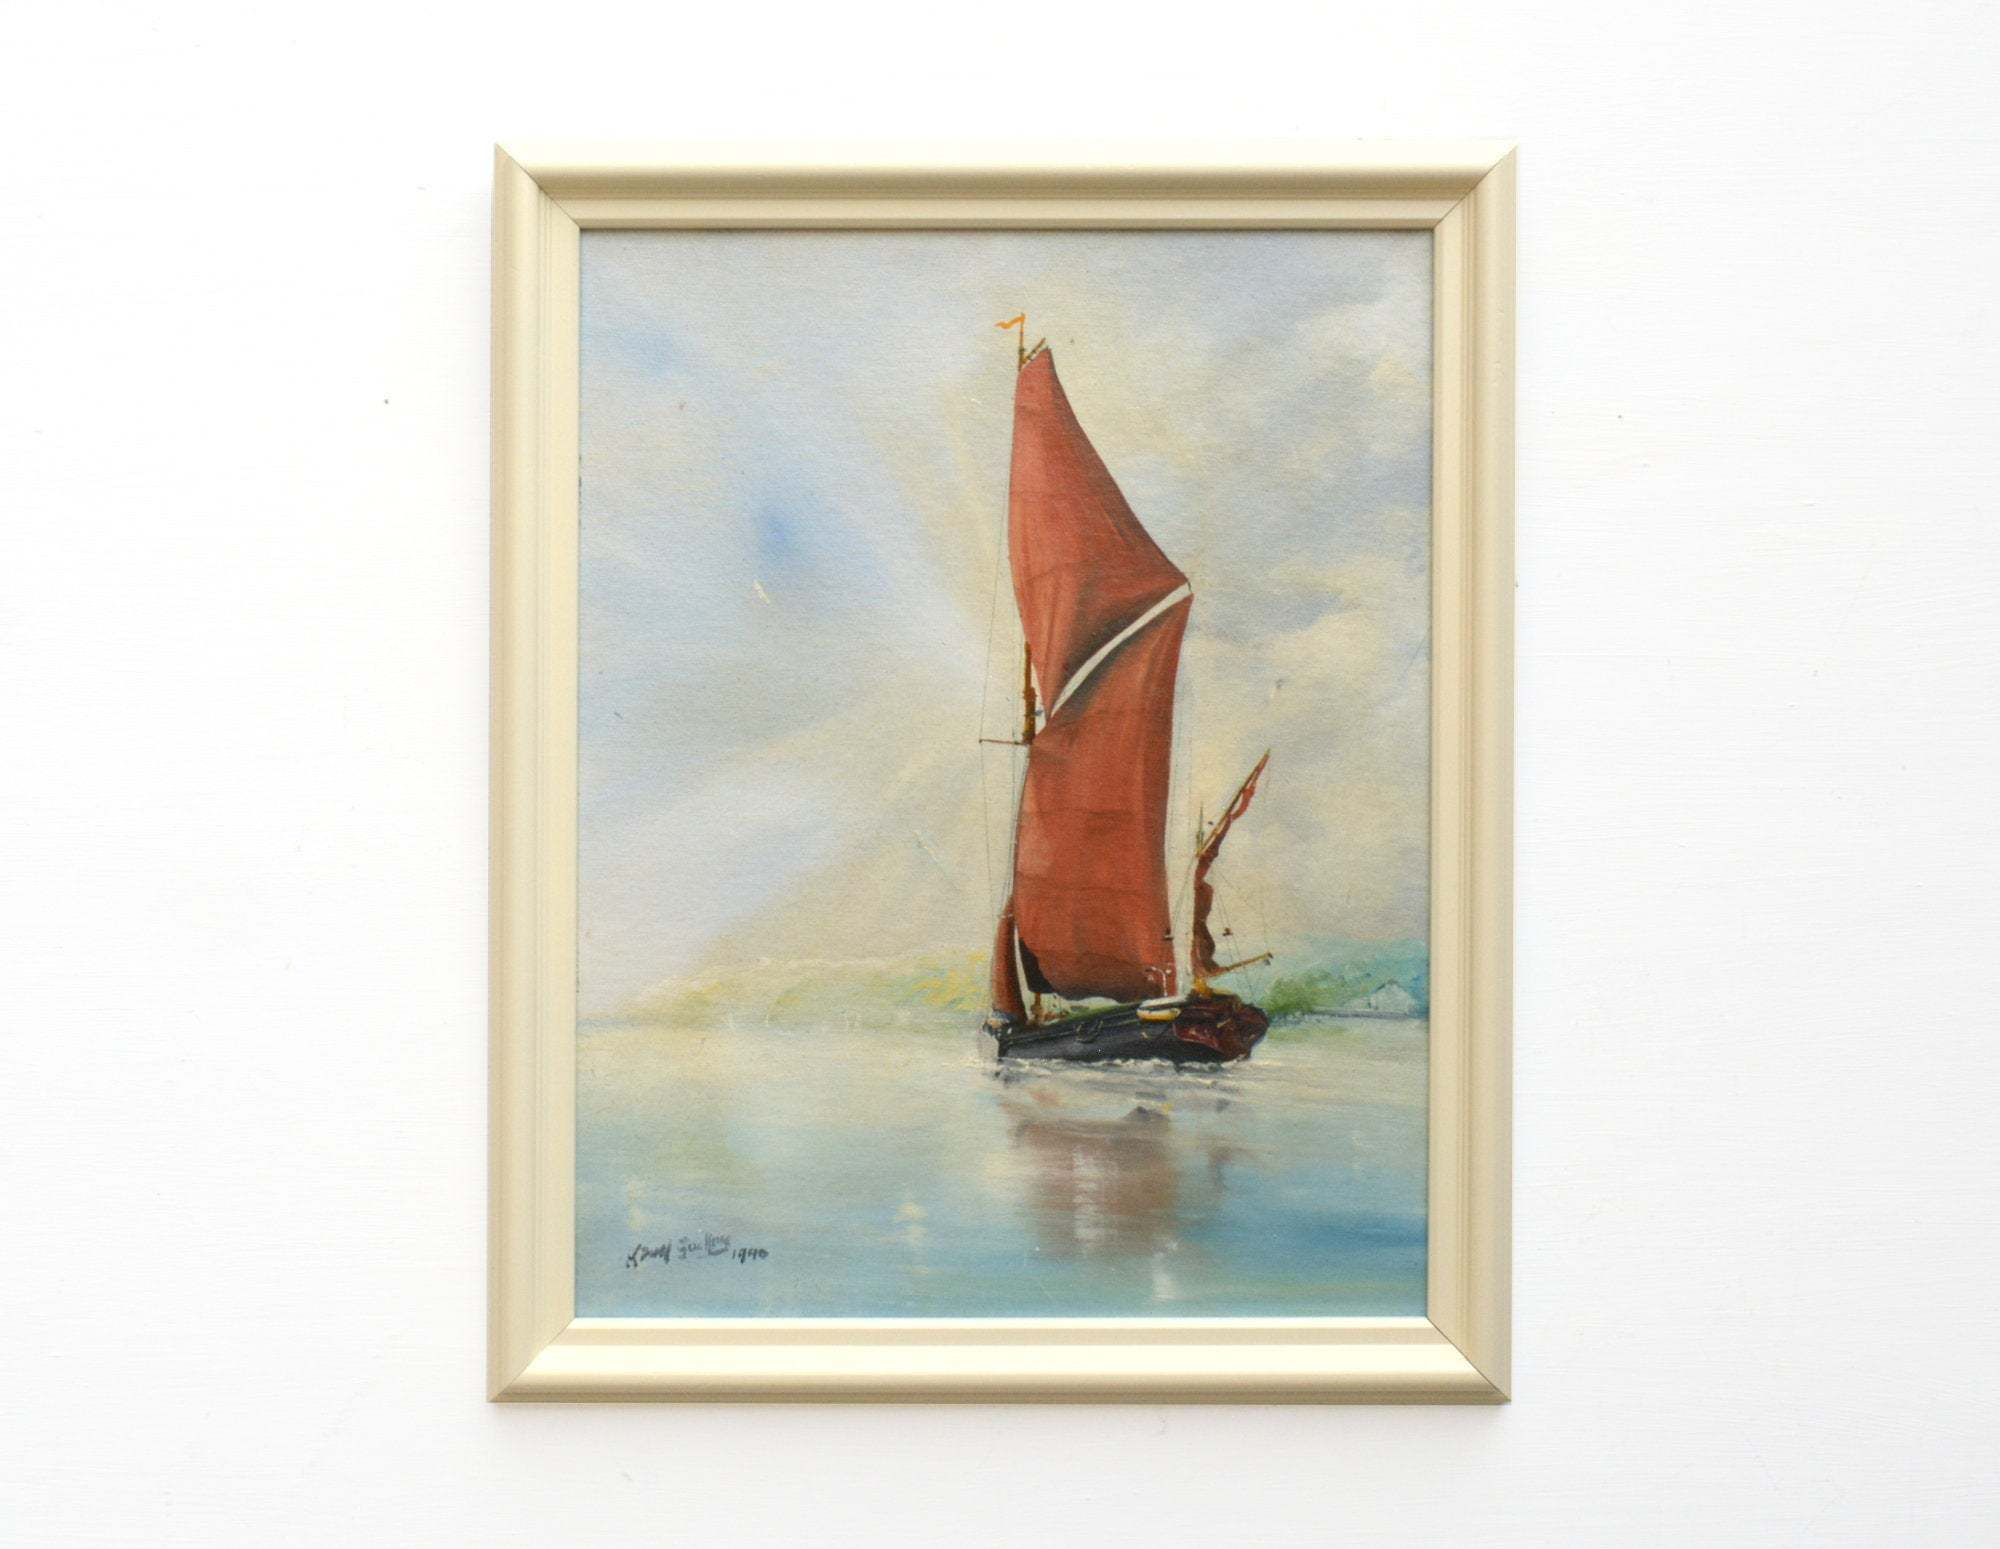 Sailing Boat Seascape Painting Ocean Wall Art Framed Nautical Art Beach House Decor